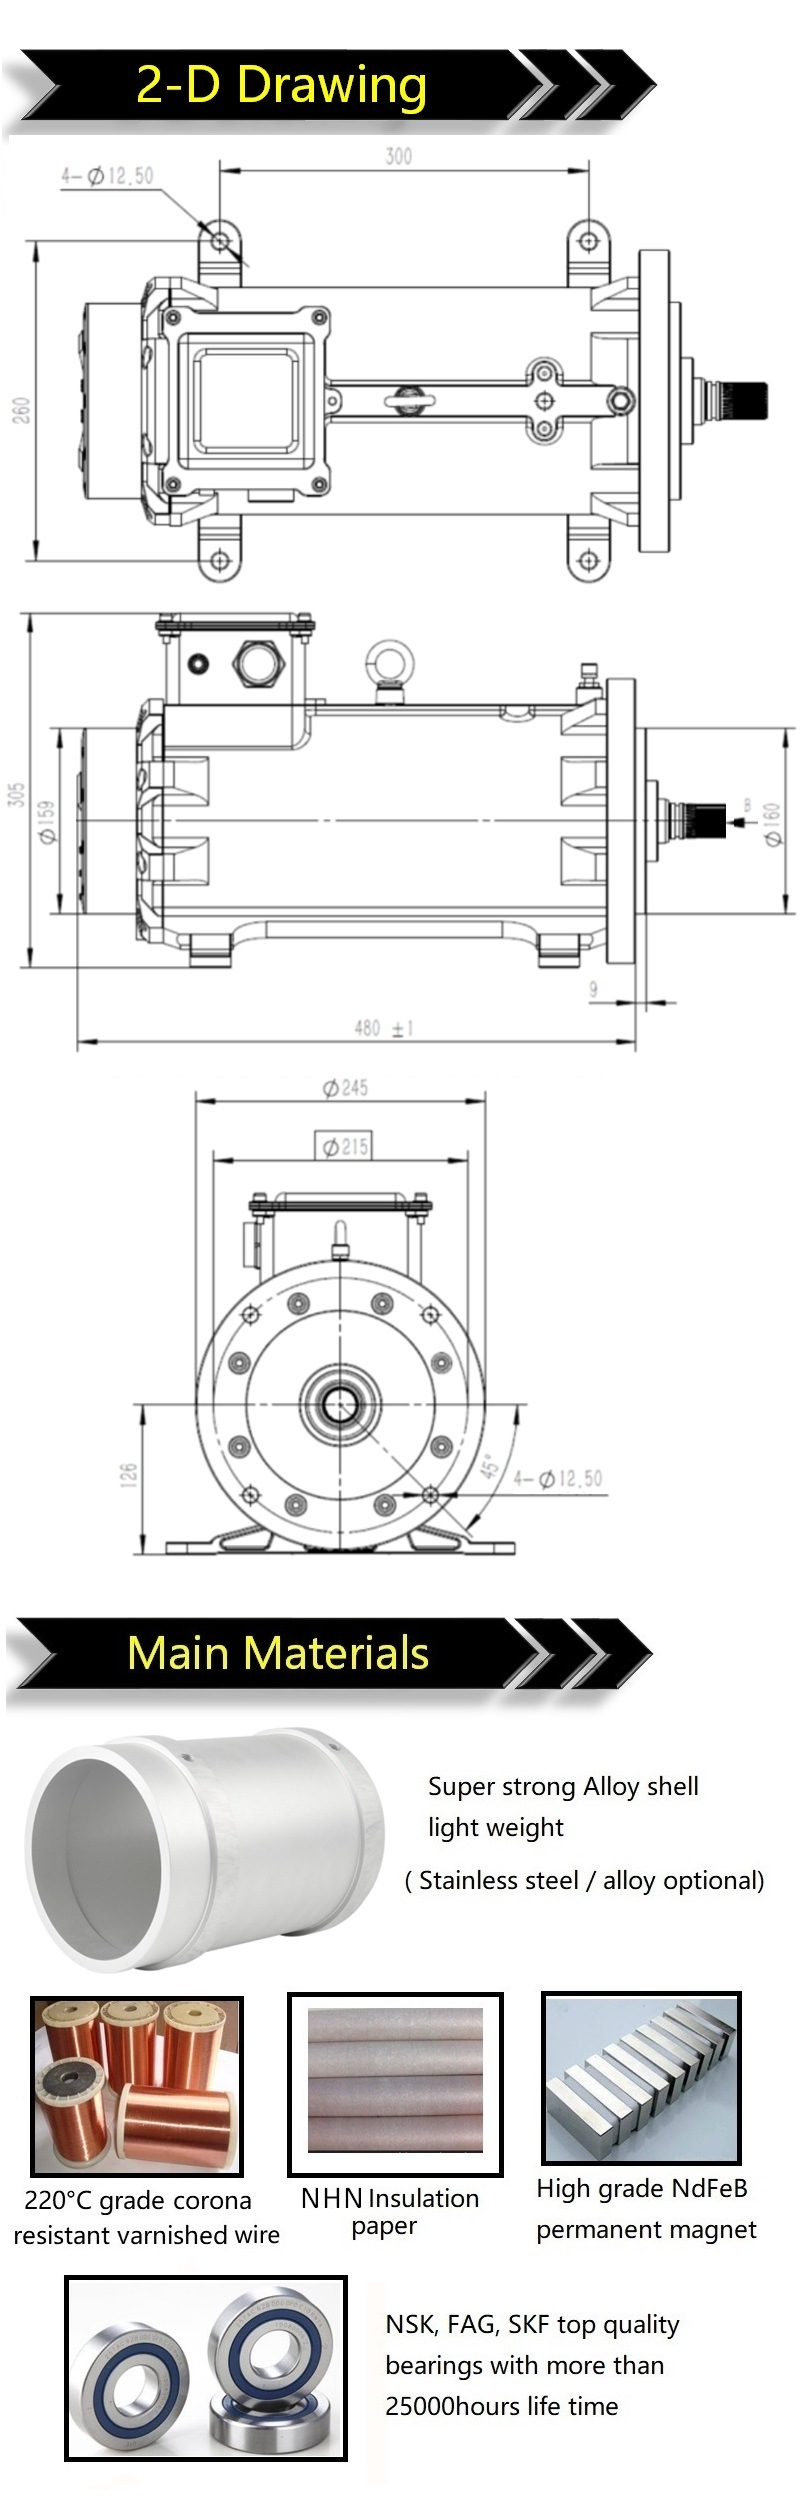 hight resolution of about mc motor mc motor technology co ltd is a leading high tech enterprises which focuses on the design research and manufacture of the new generation